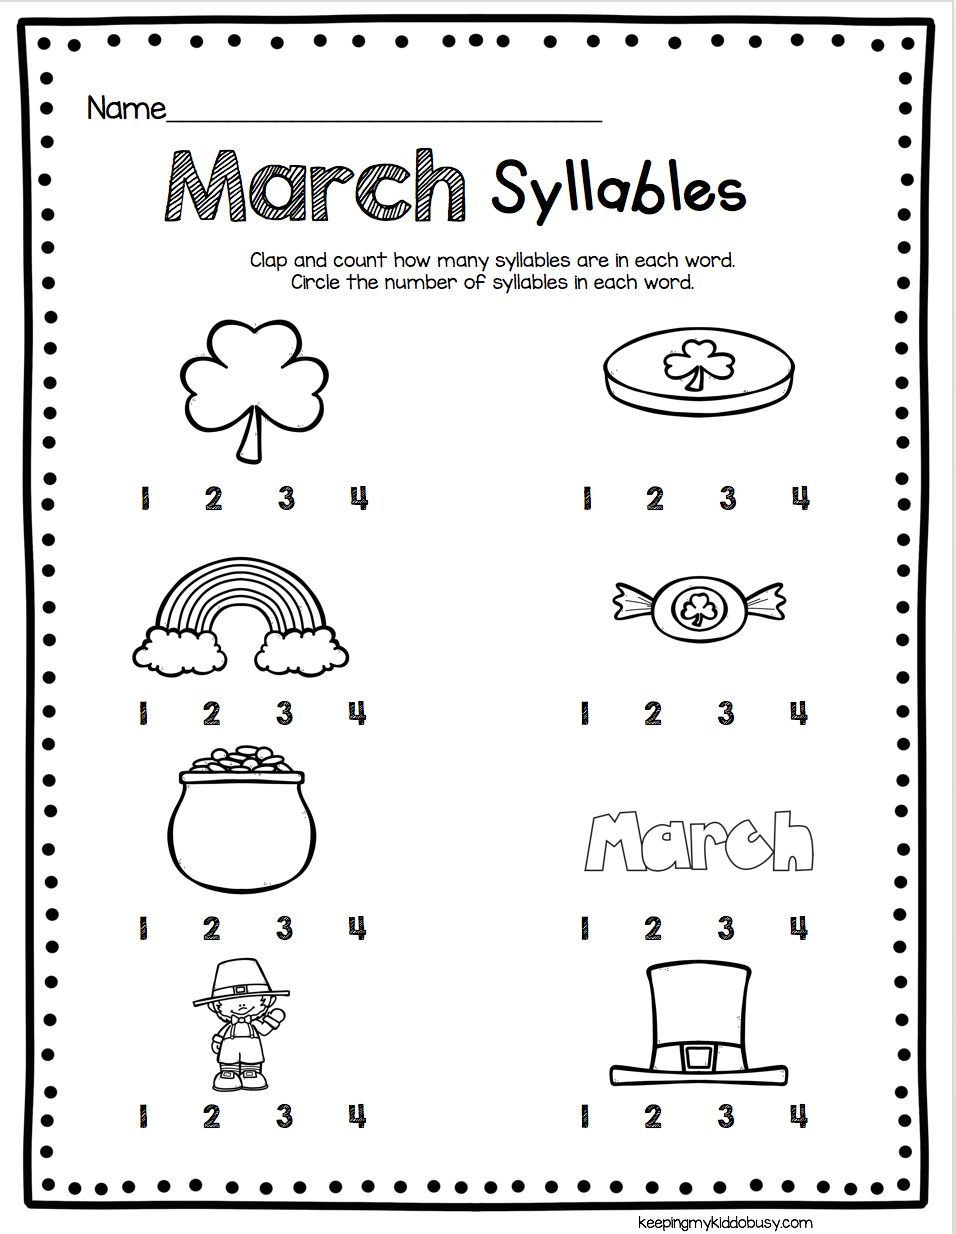 worksheet Syllable Worksheets For Kindergarten march math ela kindergarten pack no prep freebies syllables for worksheet